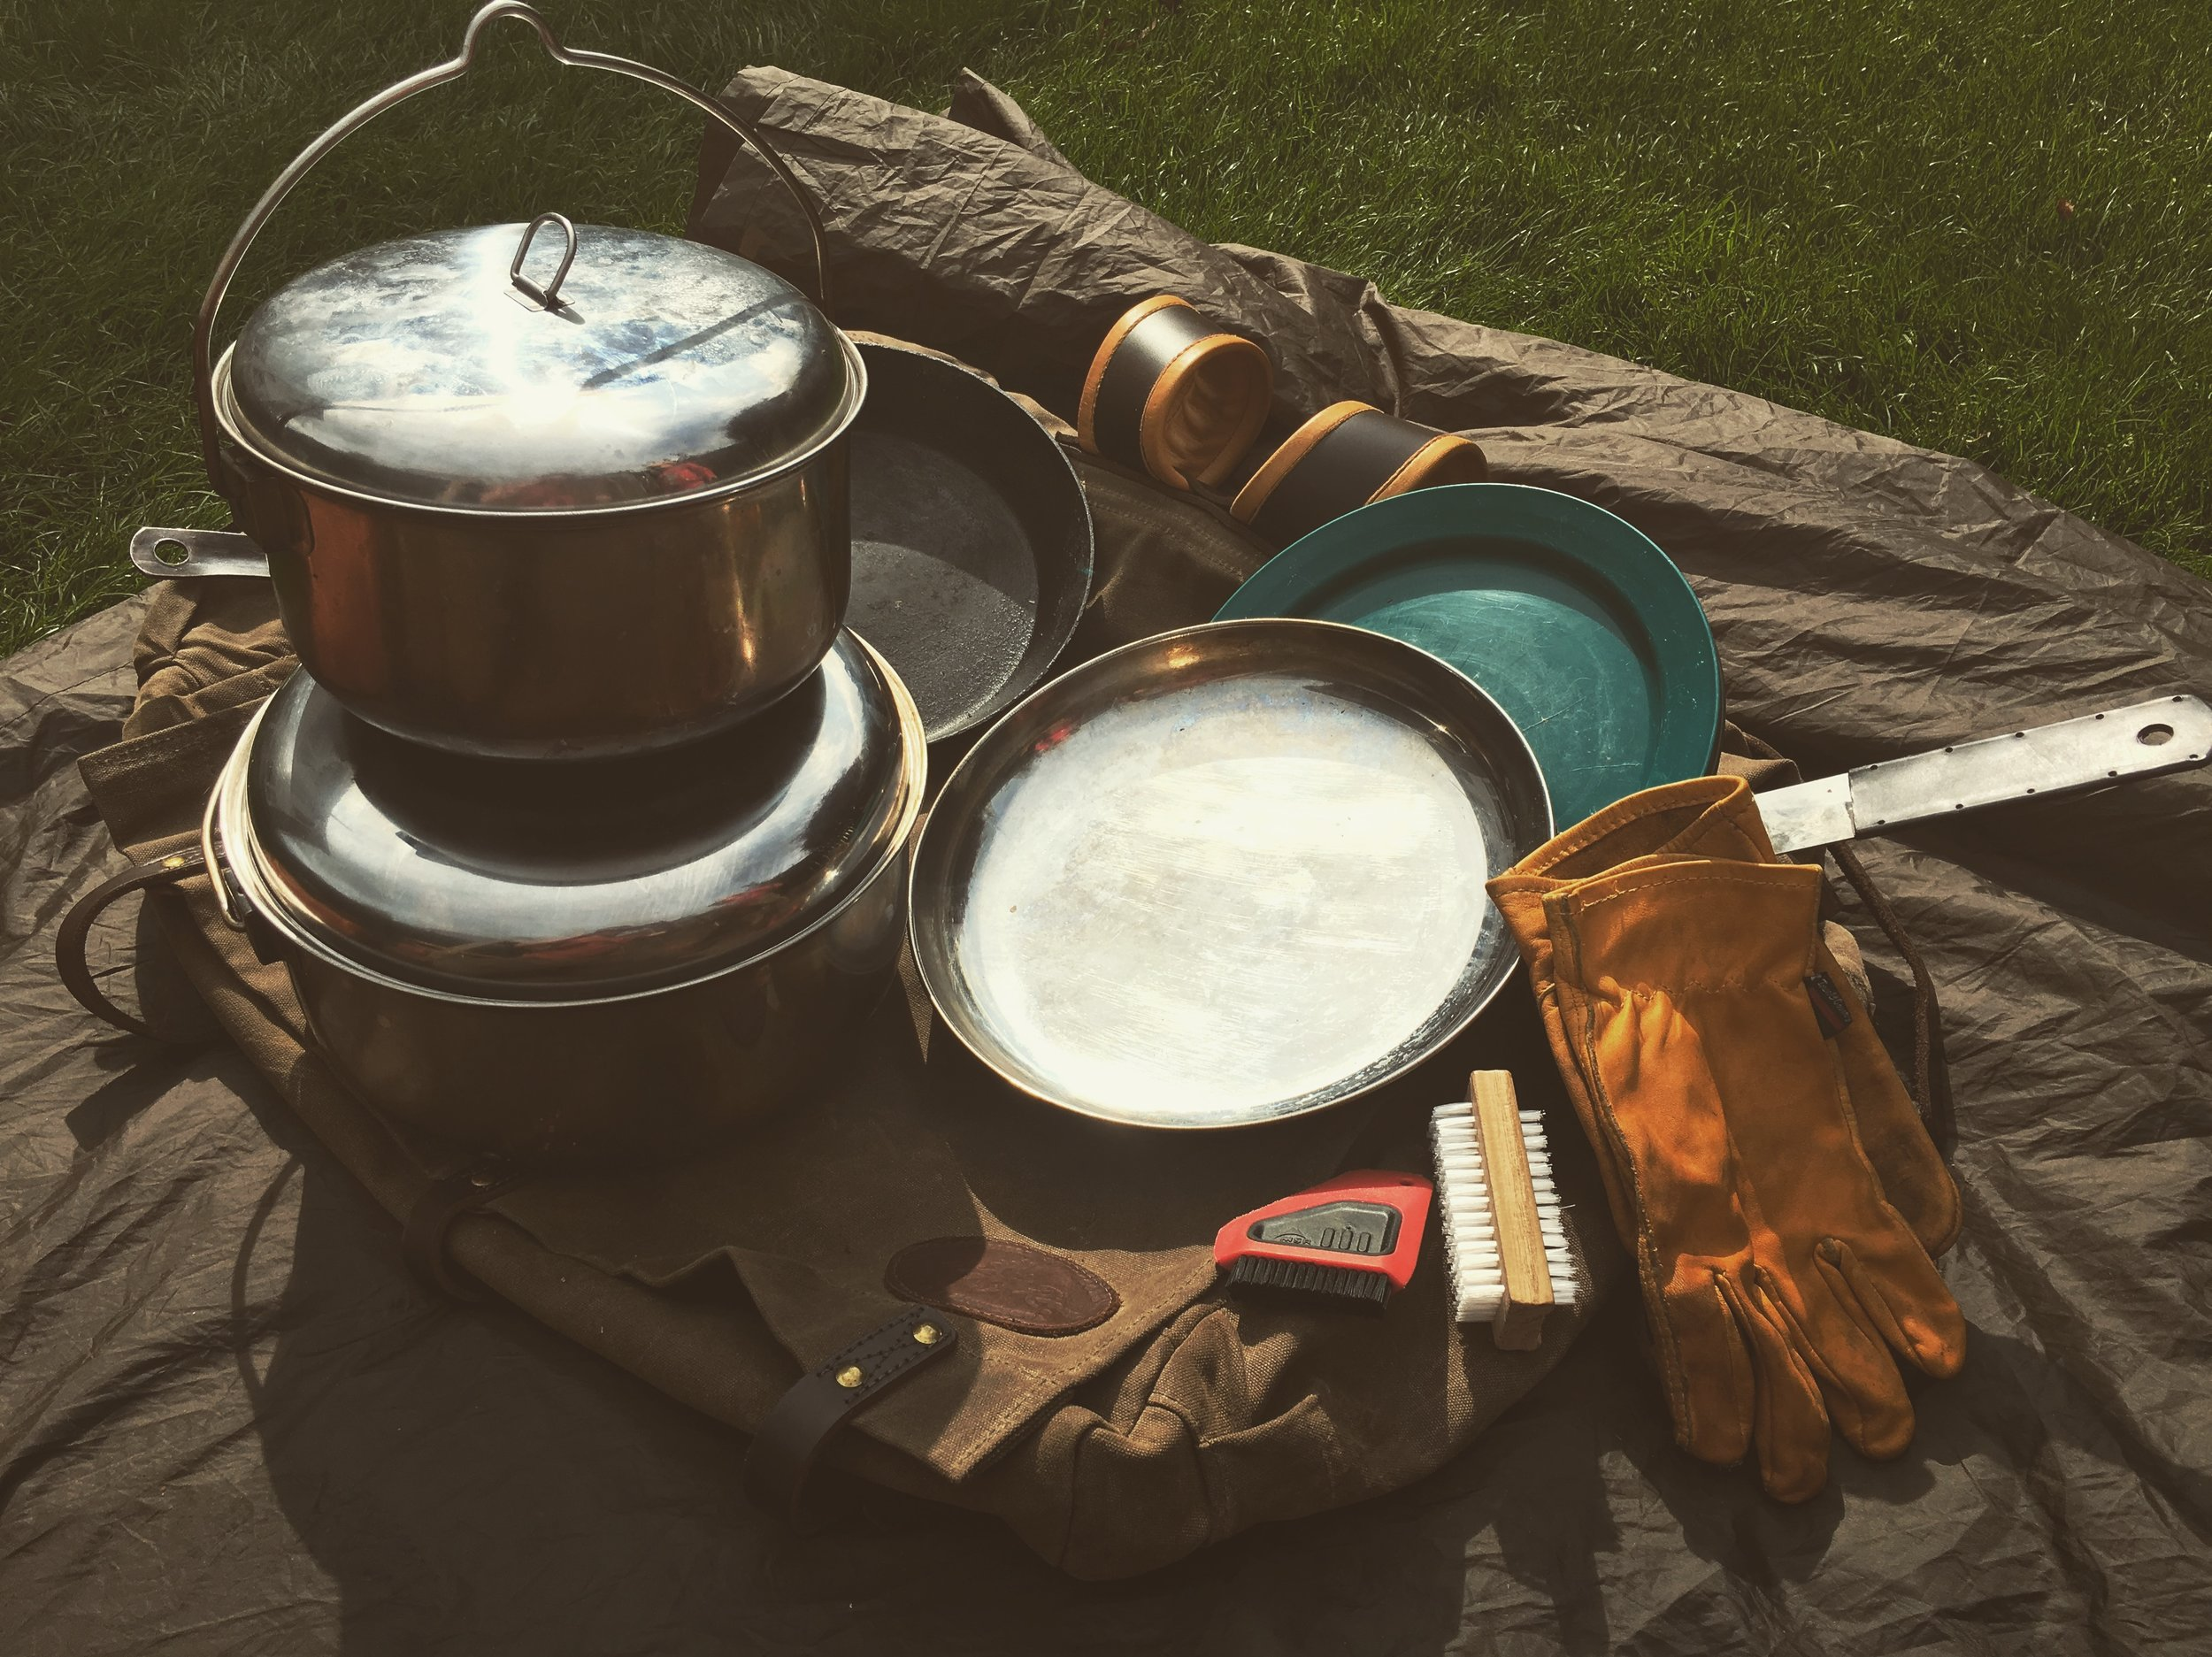 For four people we'll use a couple of stainless steel pots, and a stainless frying pan with collapsible handle. Plastic plates double as chopping boards. I find a nail brush is an excellent tool for scrubbed pans when cleaning on the trail. Leather gloves are also useful when cooking by the fire.